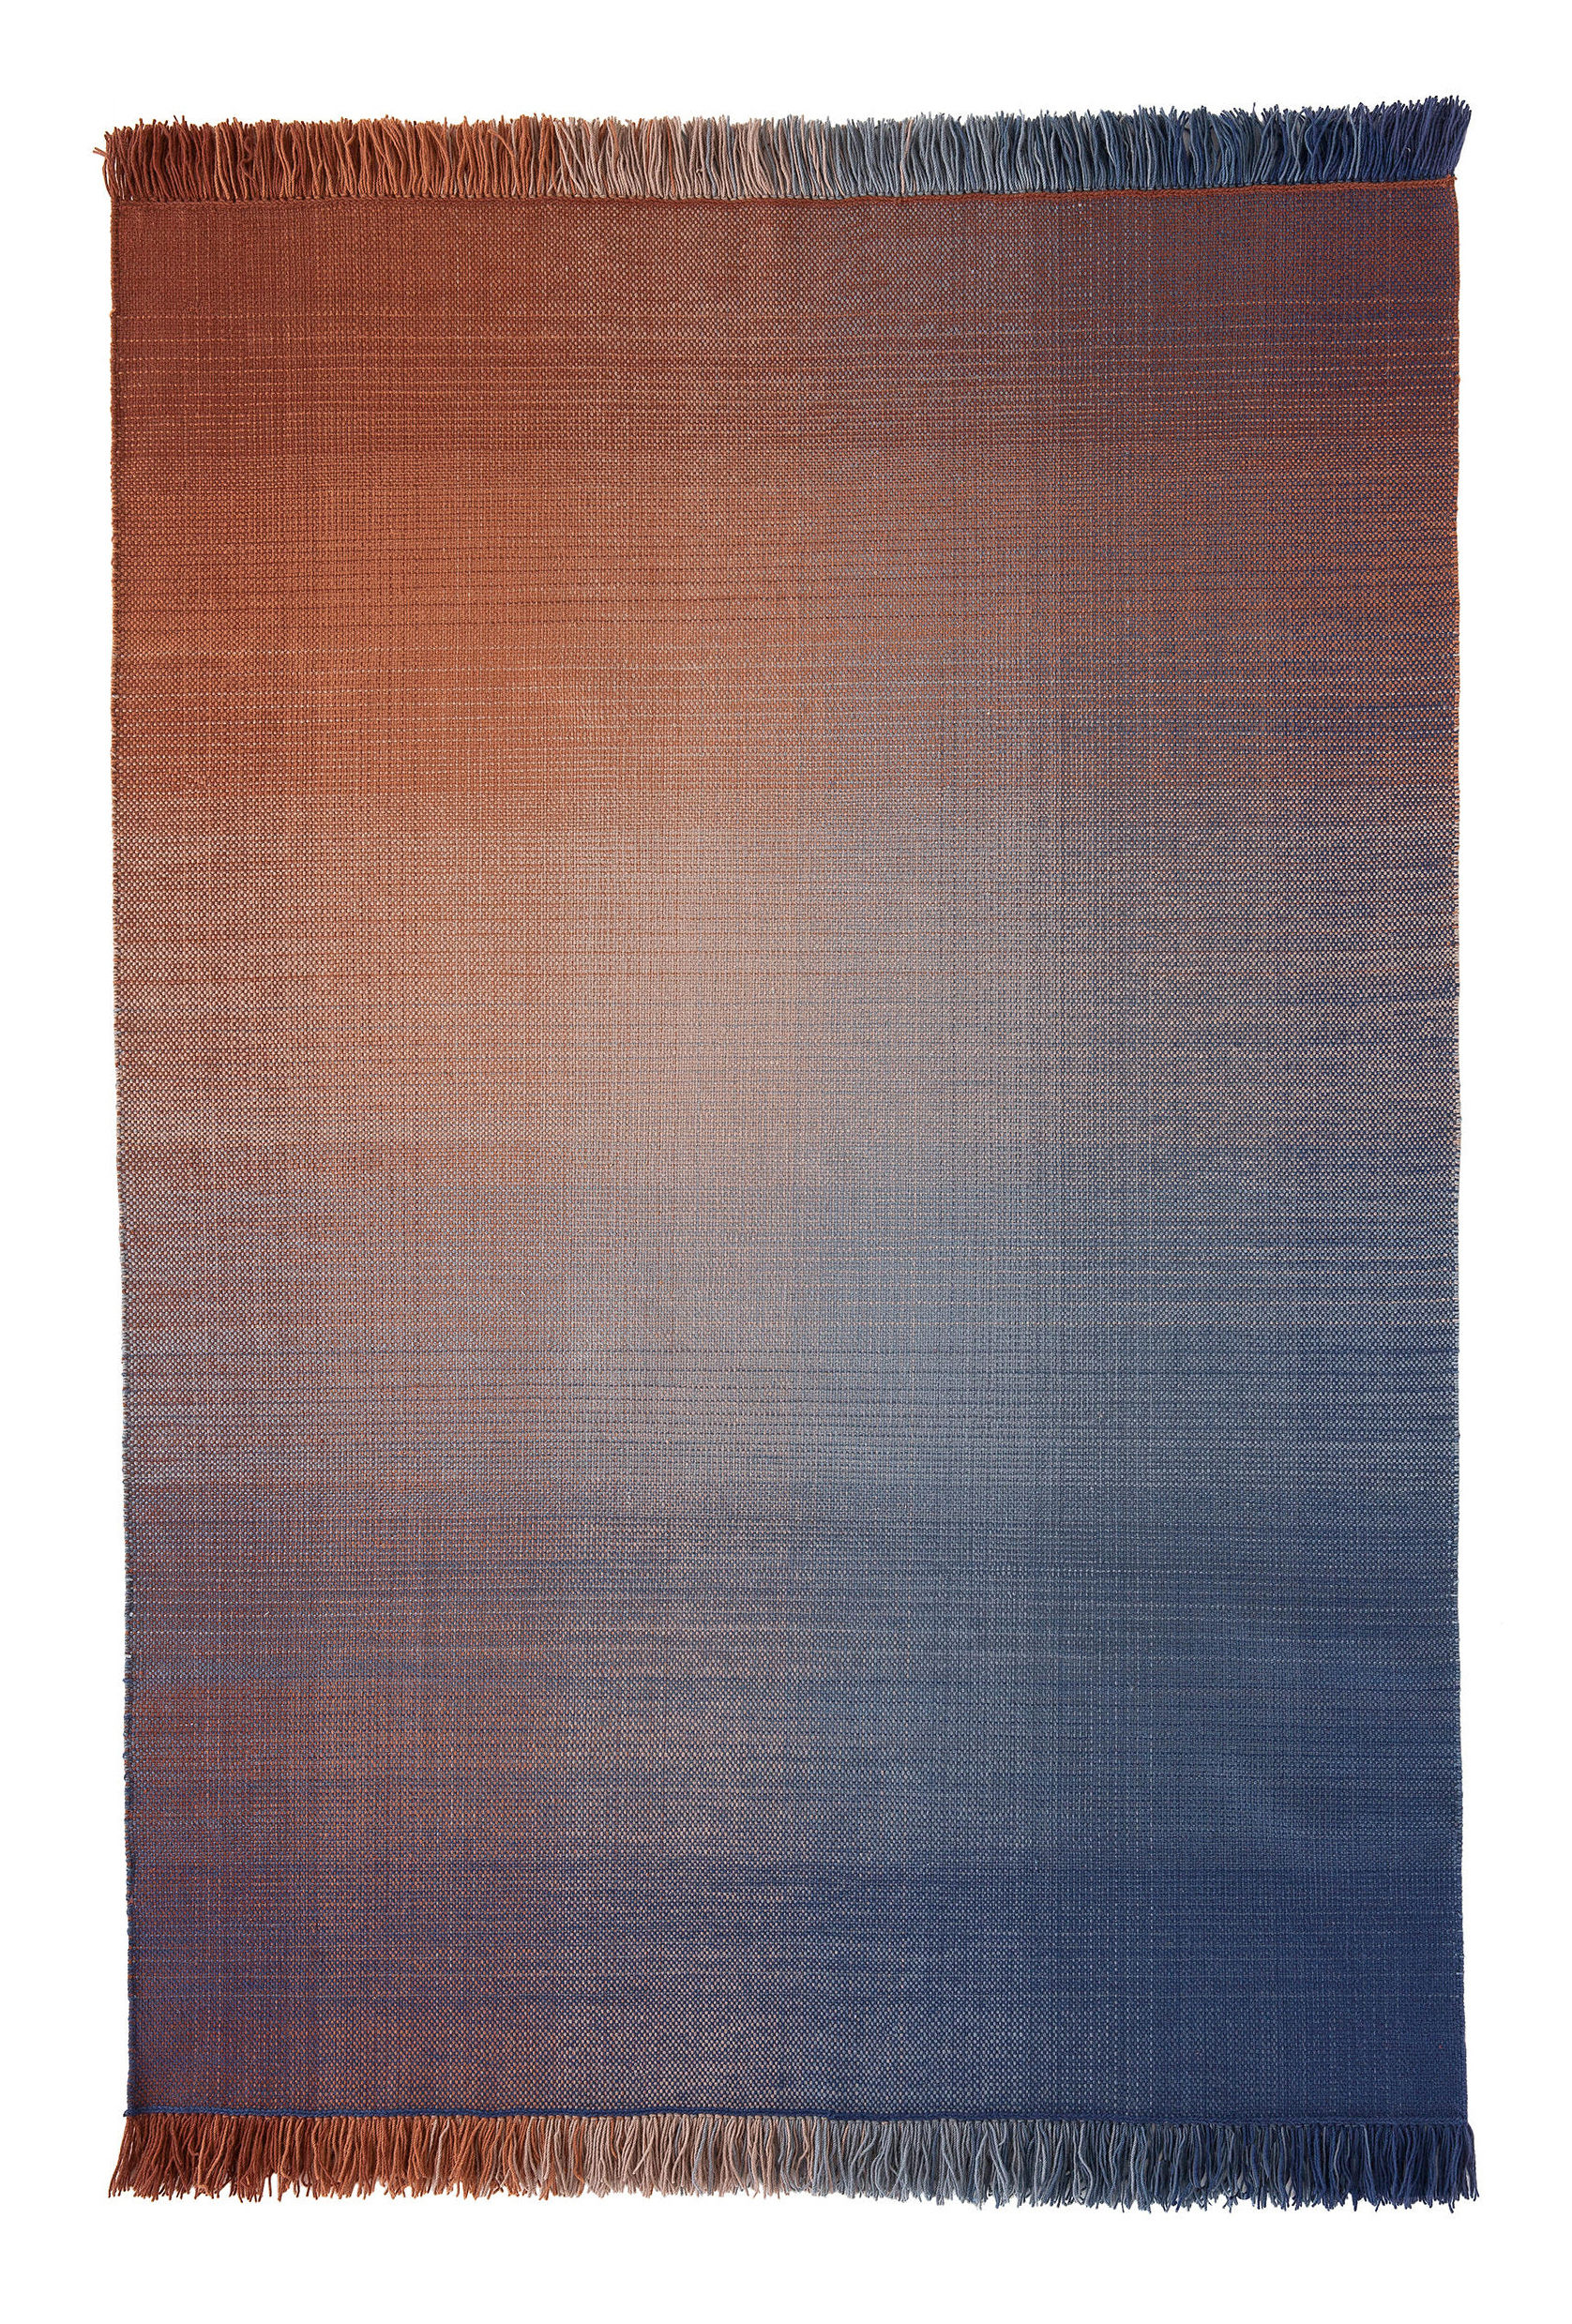 Decoration - Rugs - Shade palette 2 Rug - 170 x 240 cm by Nanimarquina - Blue & Orange - New-zealand wool